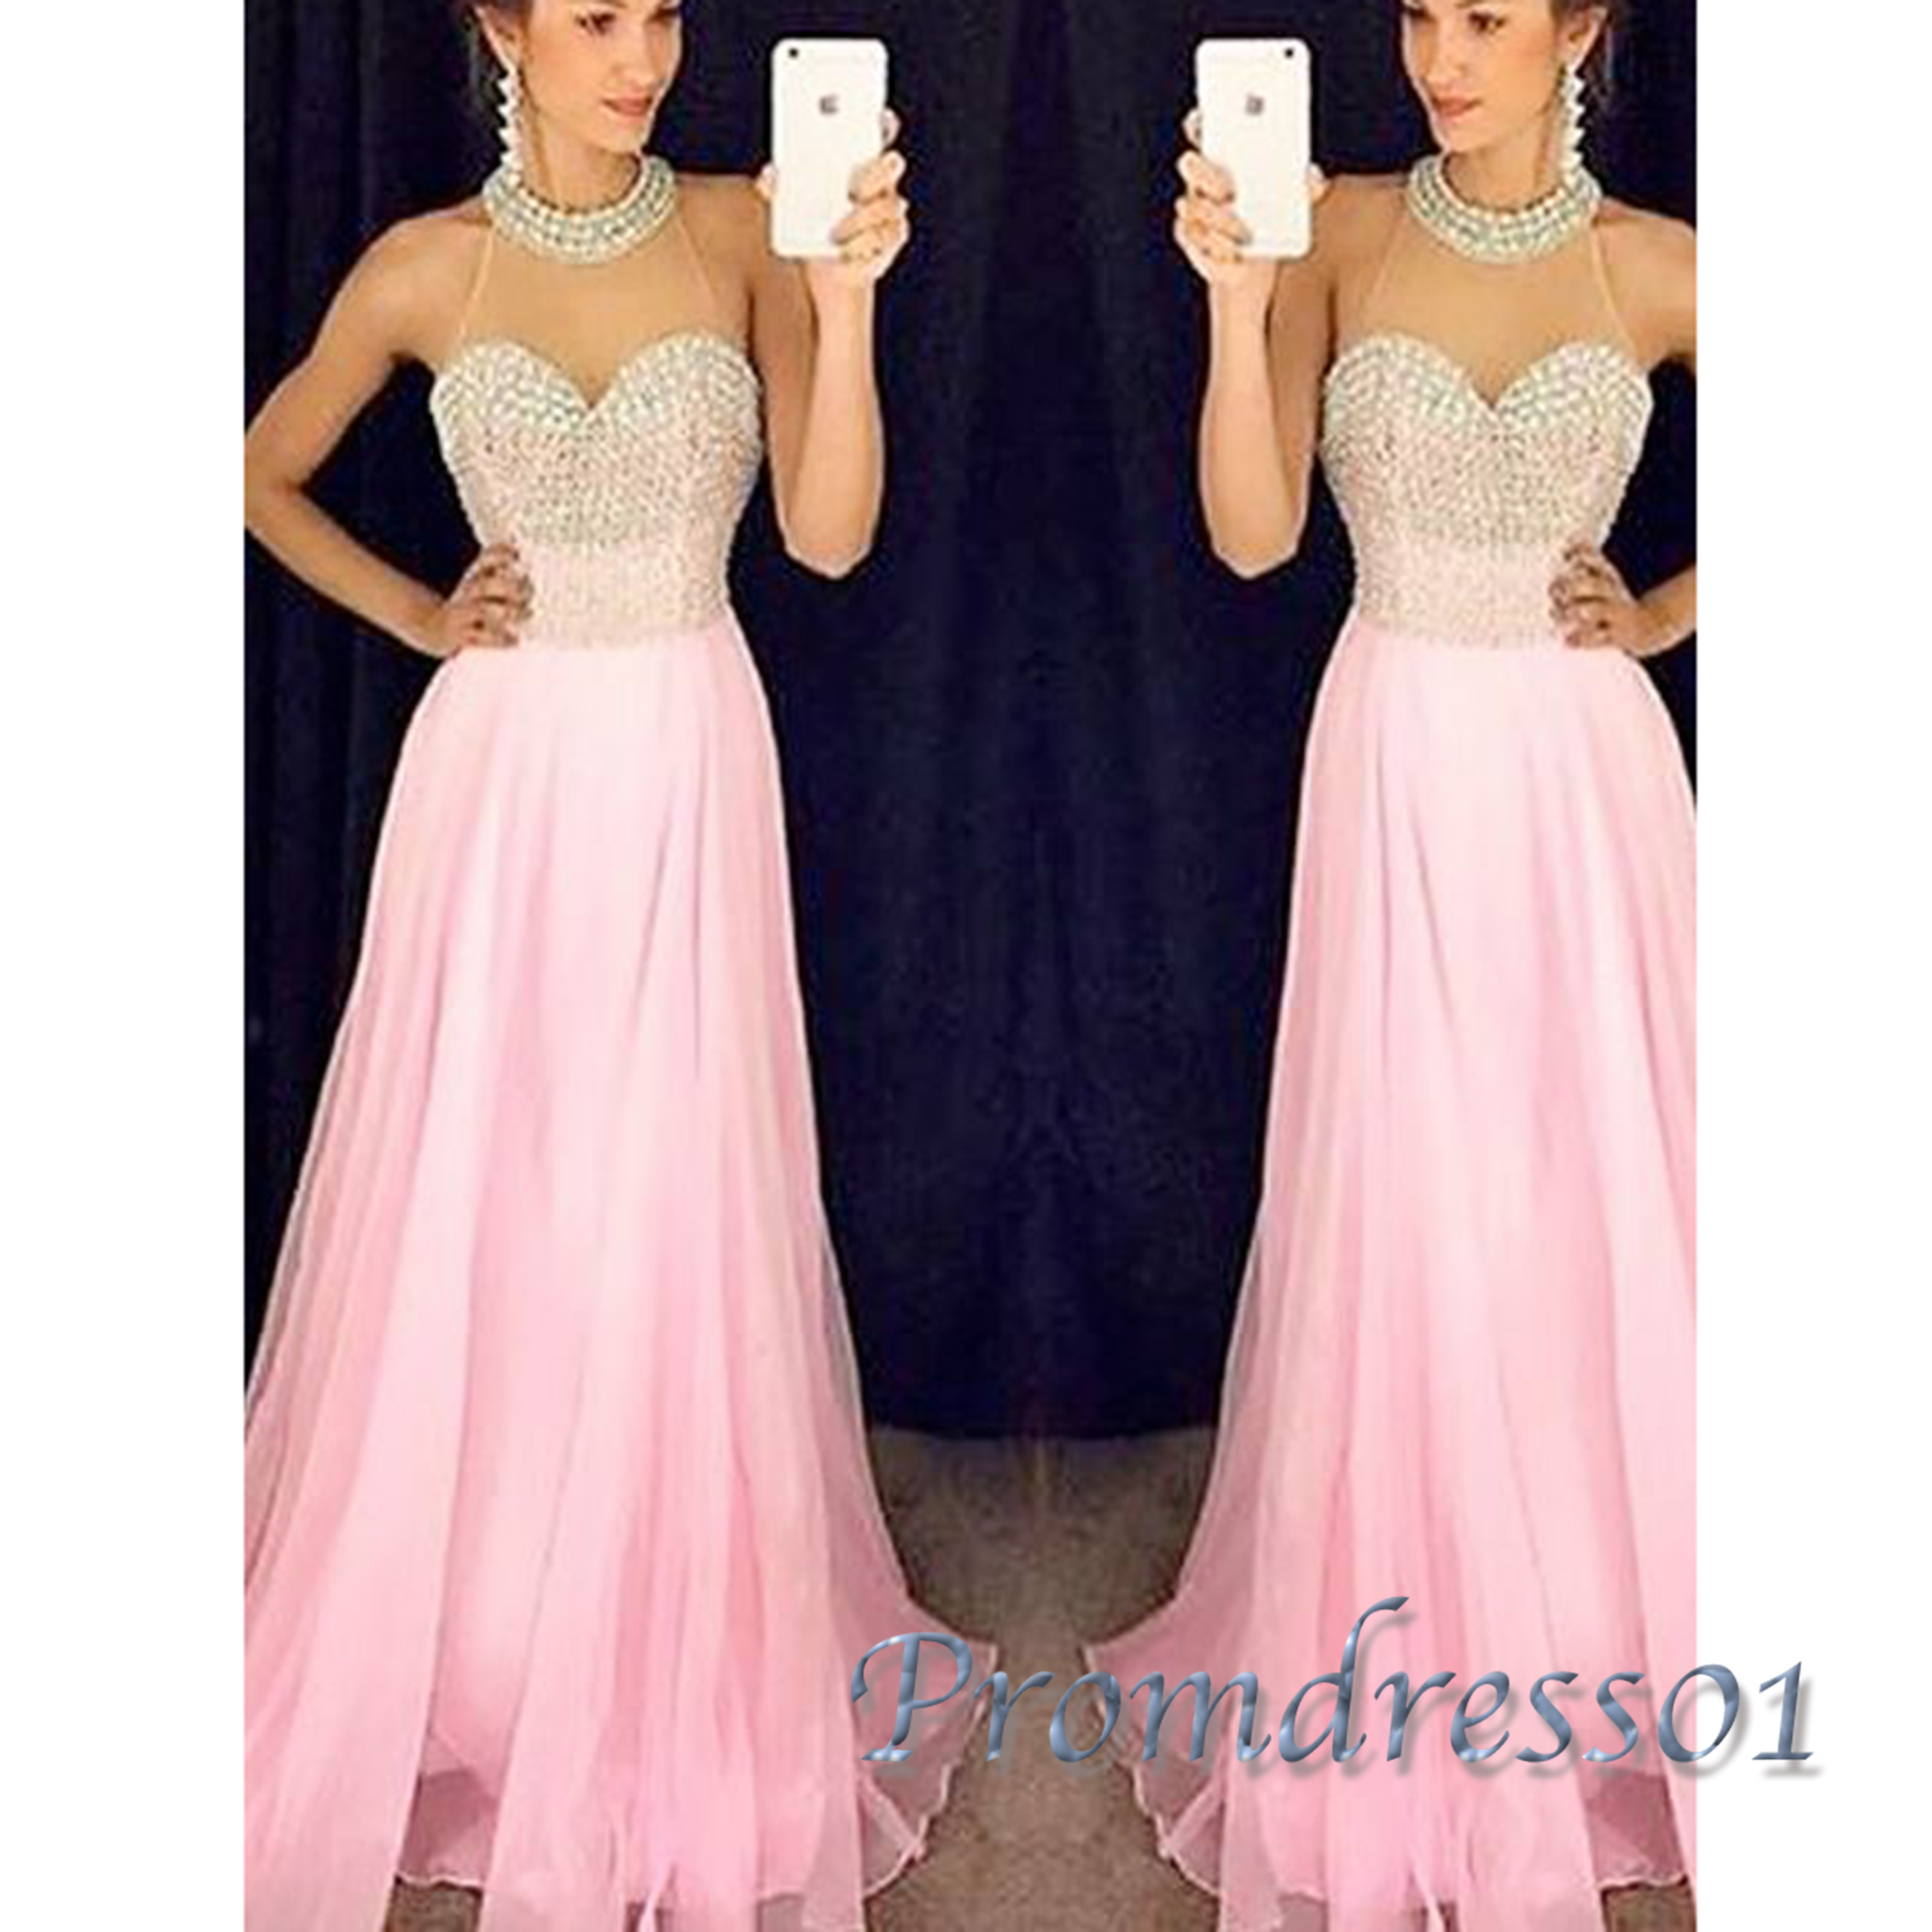 Pageant Prom Formal Dresses 2017 - Boutique Prom Dresses